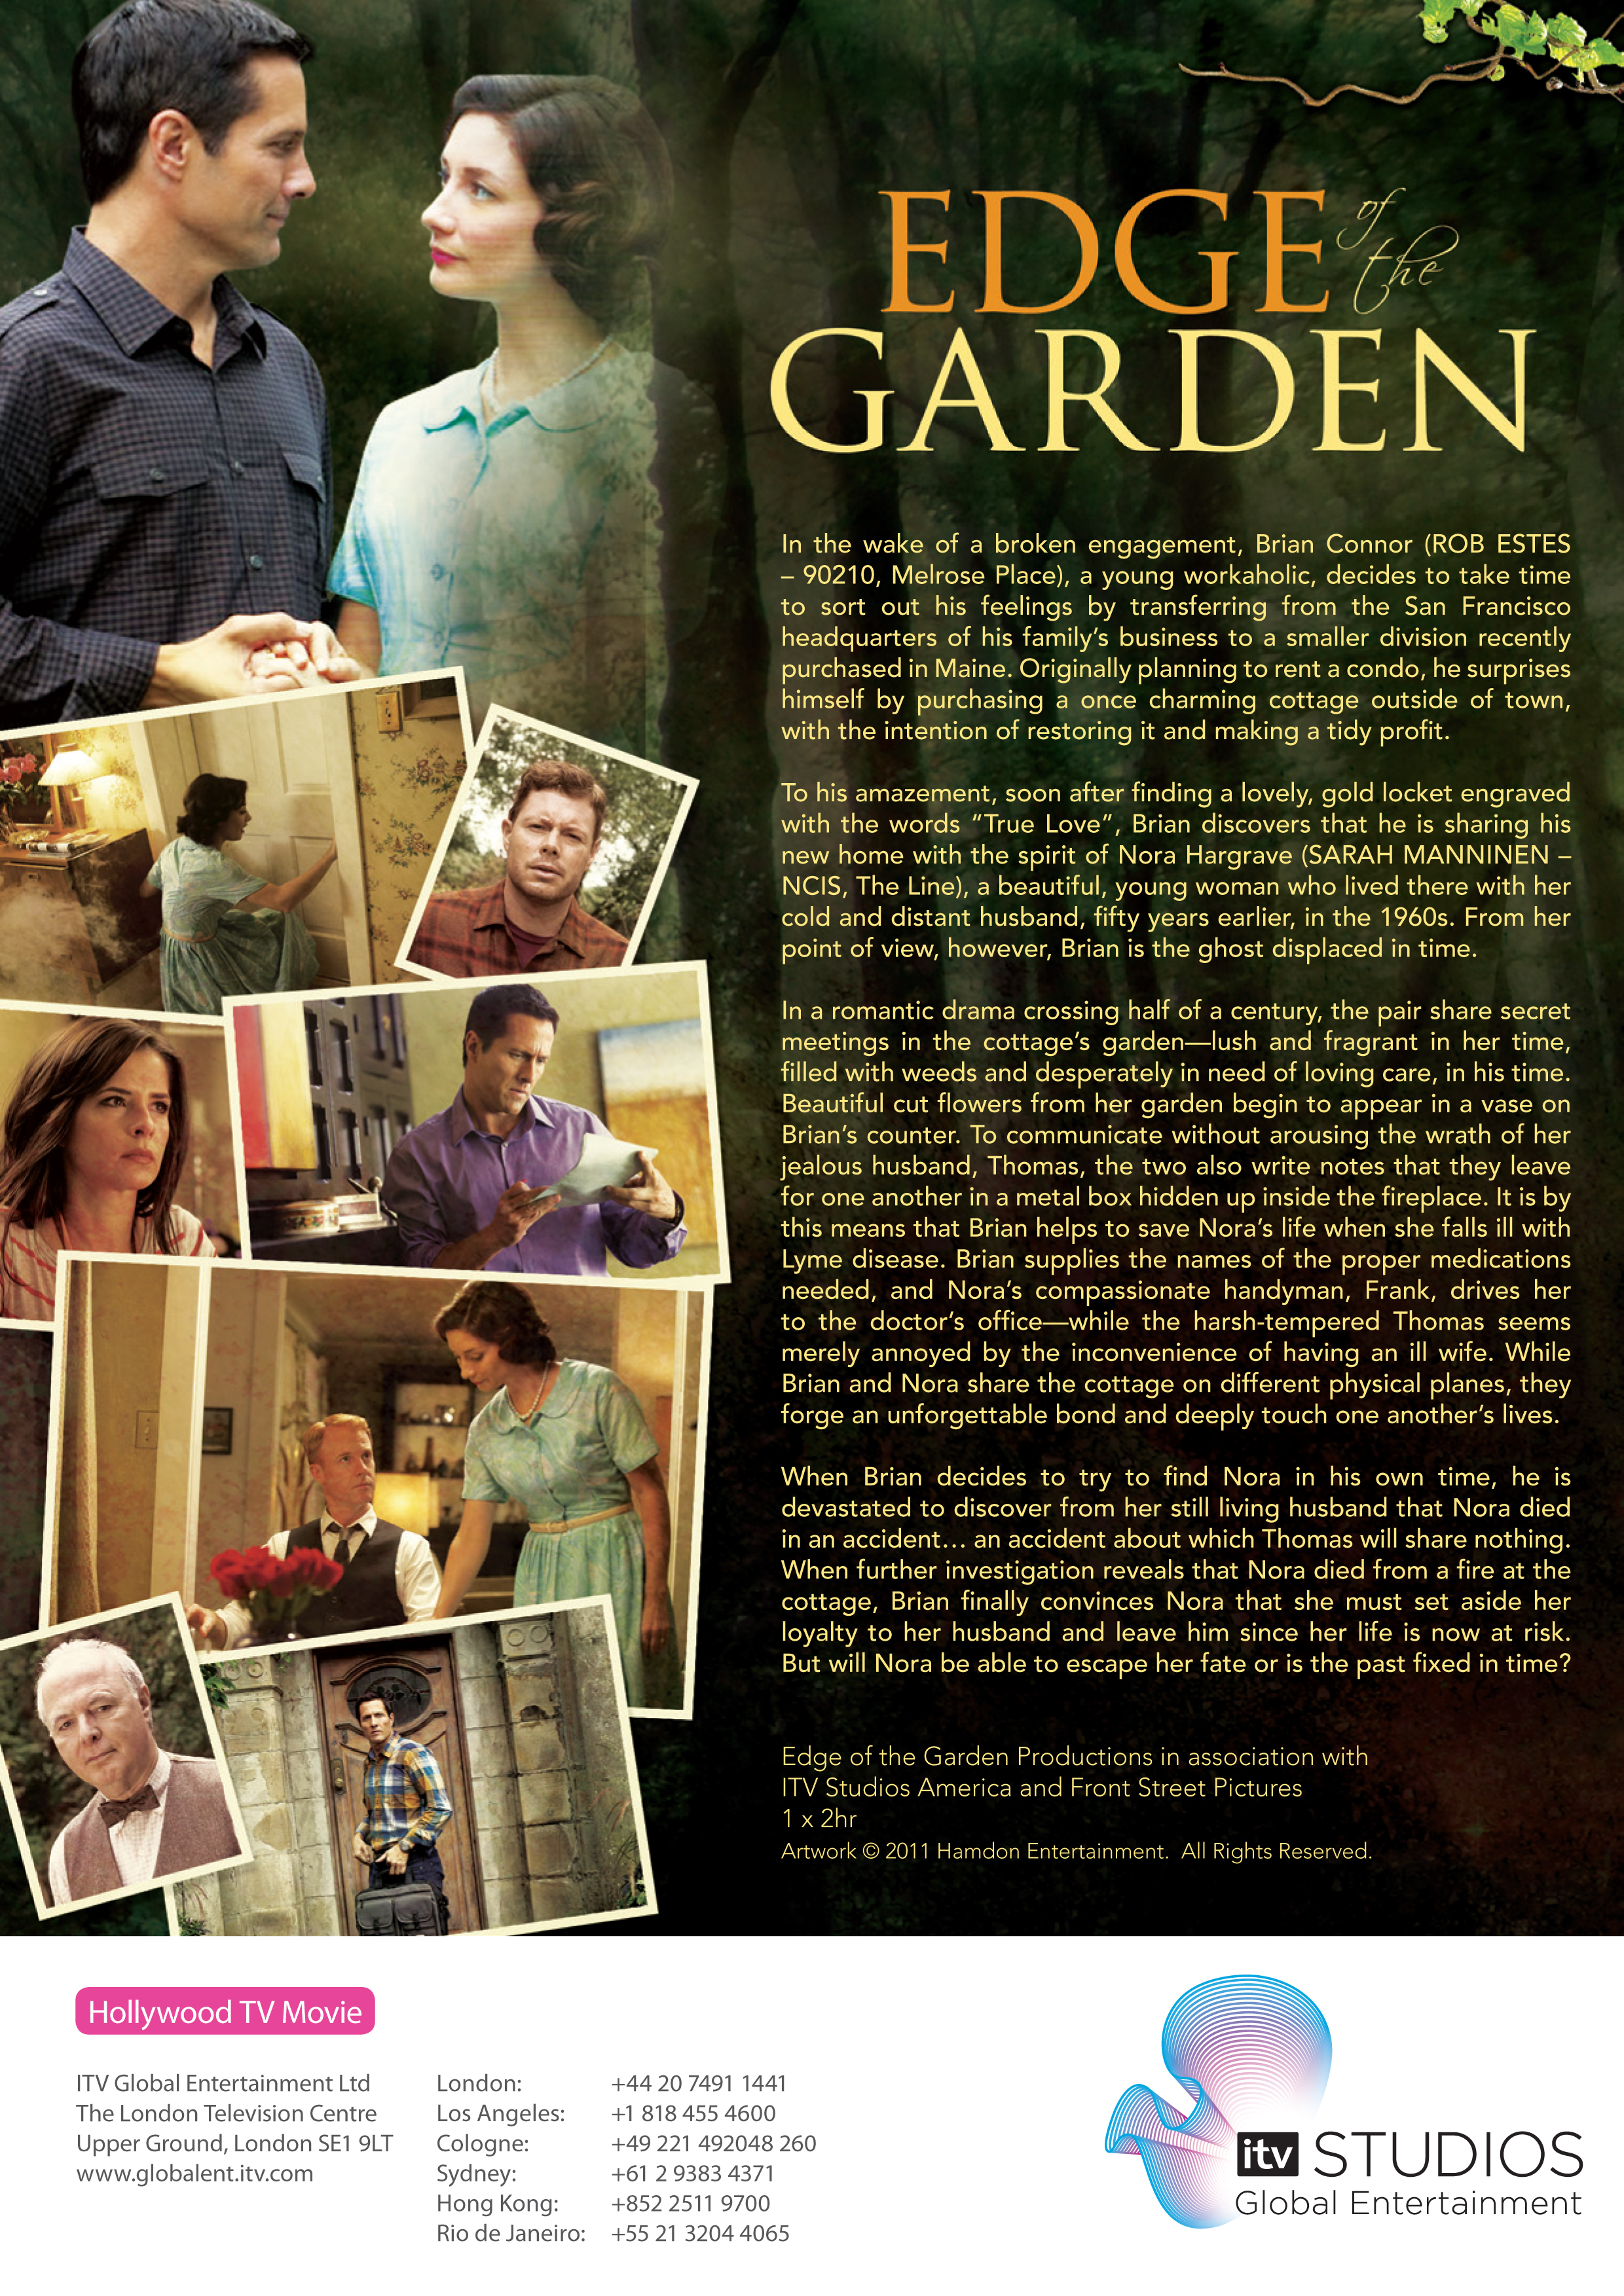 The Illusion Factory produced the campaign for Edge of the Garden